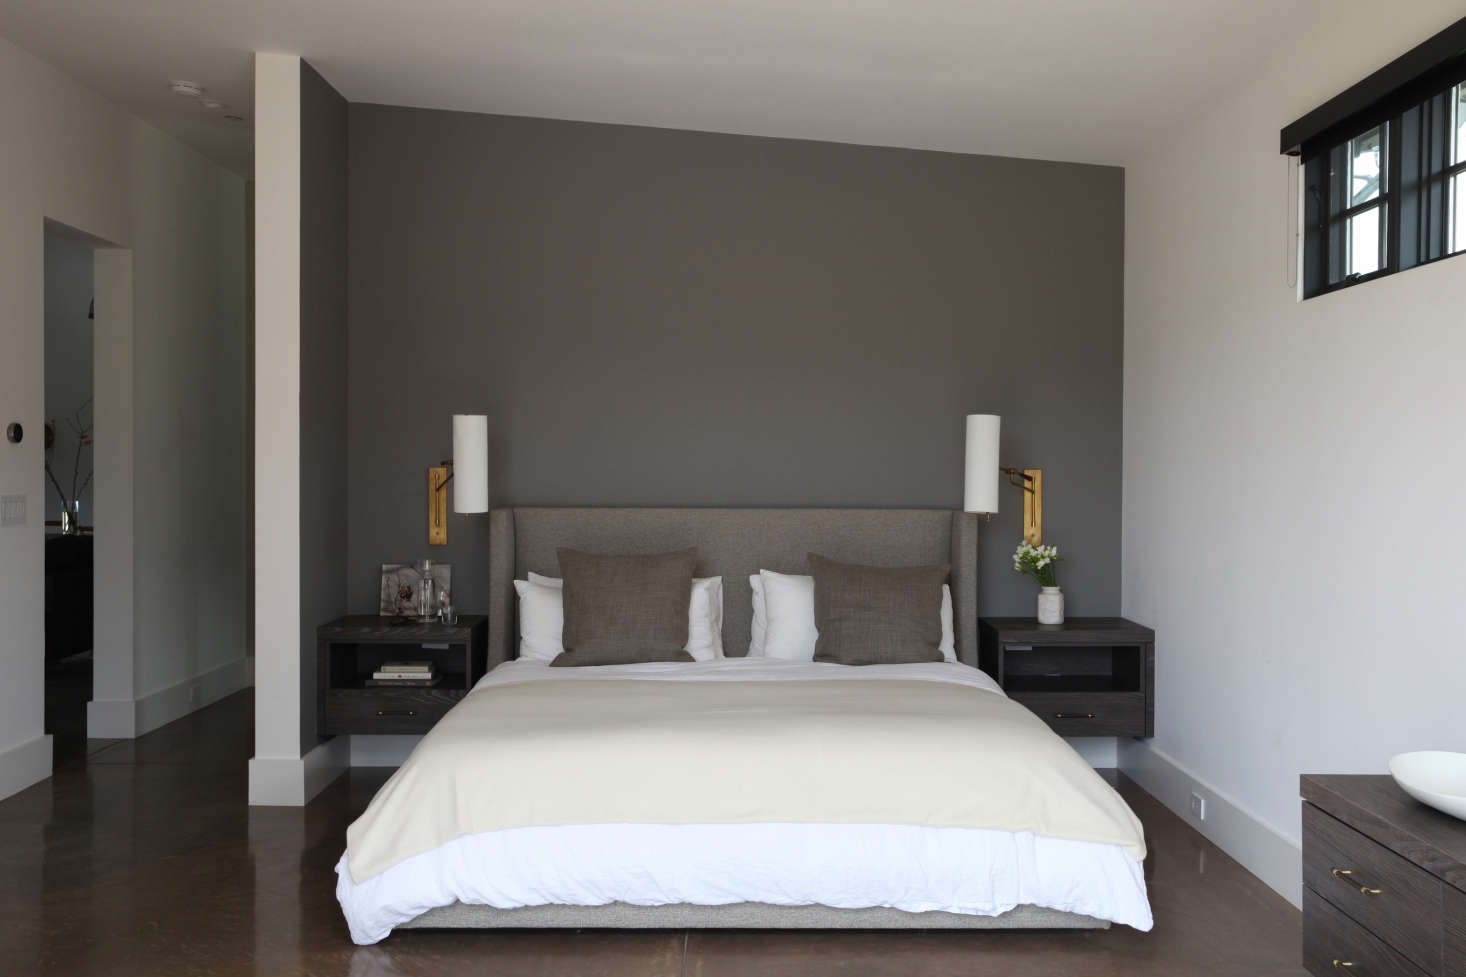 In the master bedroom, twoFrankfort Articulating Wall Lights from Circa Lighting flank afabric-backed bed from Room & Board. The nightstands are custom and the accent wall is painted in Farrow & Ball Mole&#8